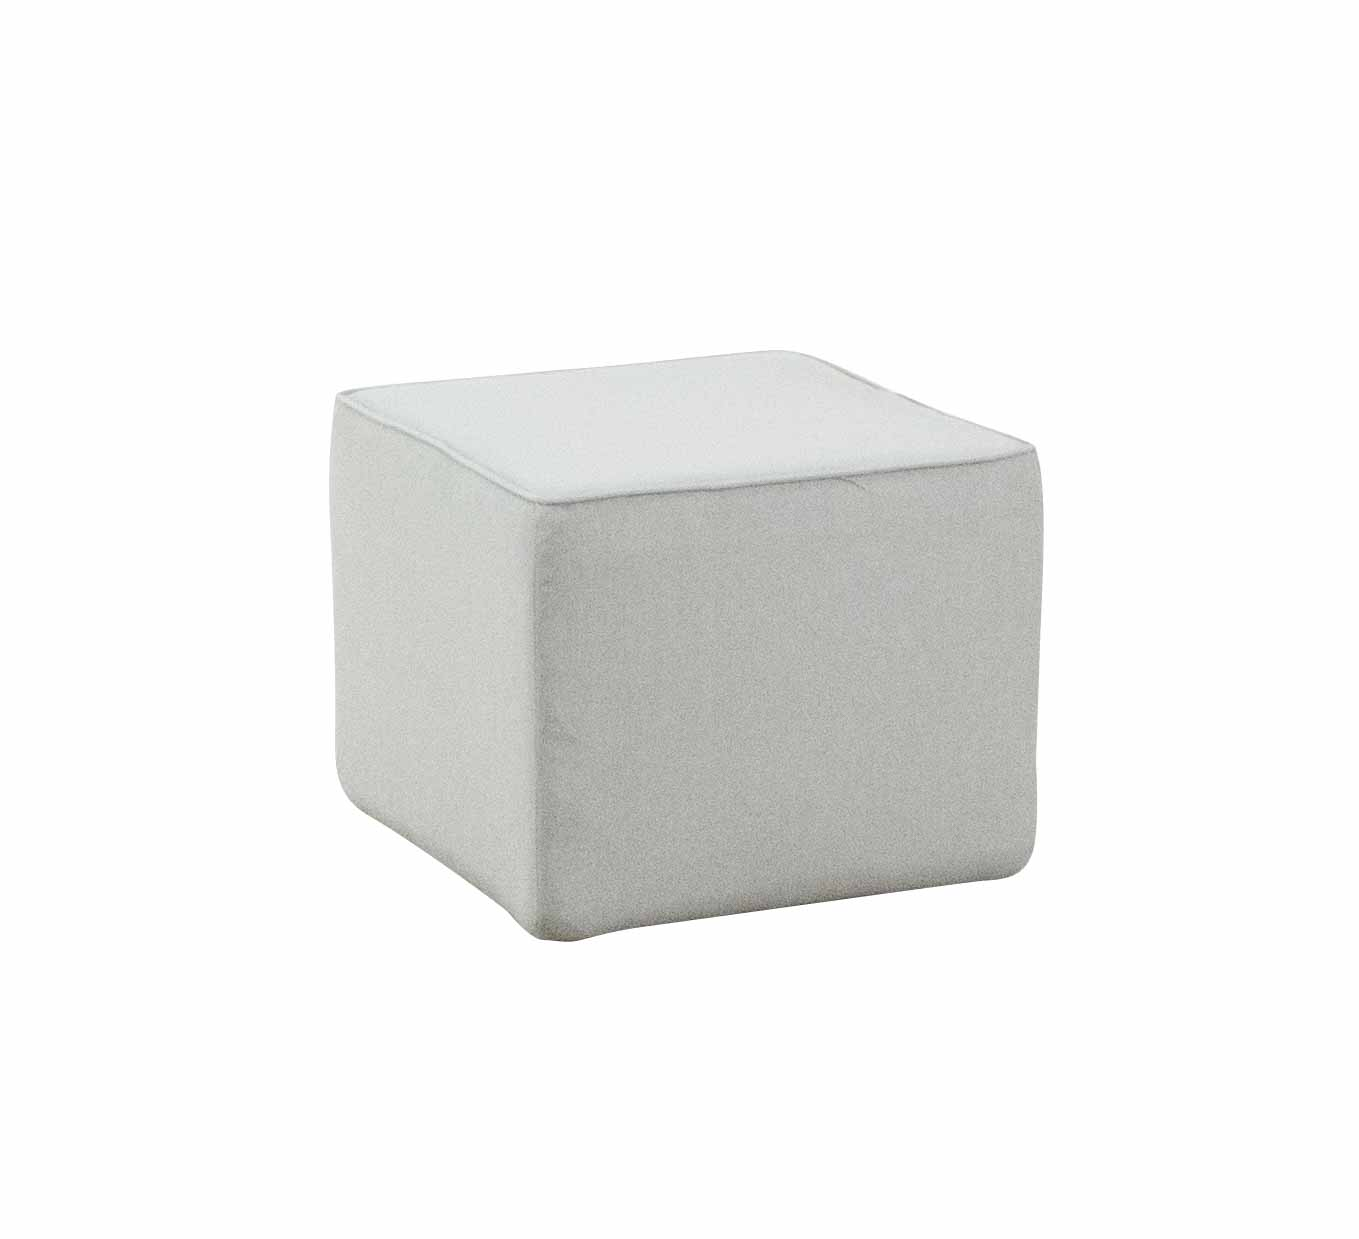 "PF-23 Square Cushioned Stool   21.5"" x 21.5"" x 18"""